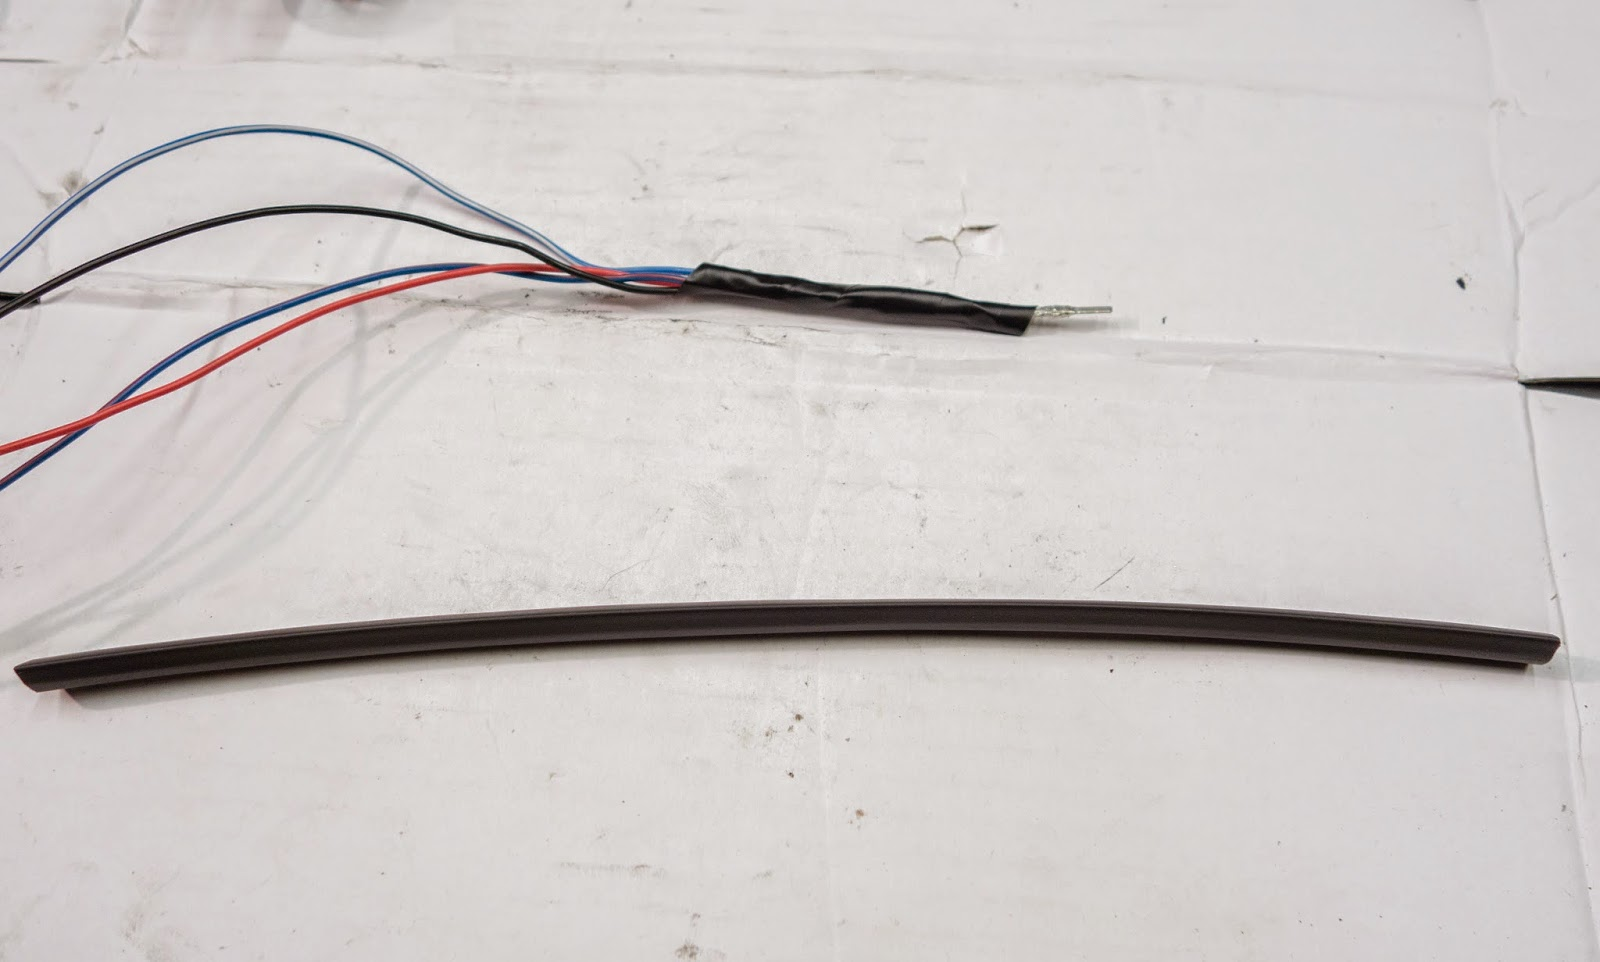 Tape the wires together ready for inserting into heat shrink tubing